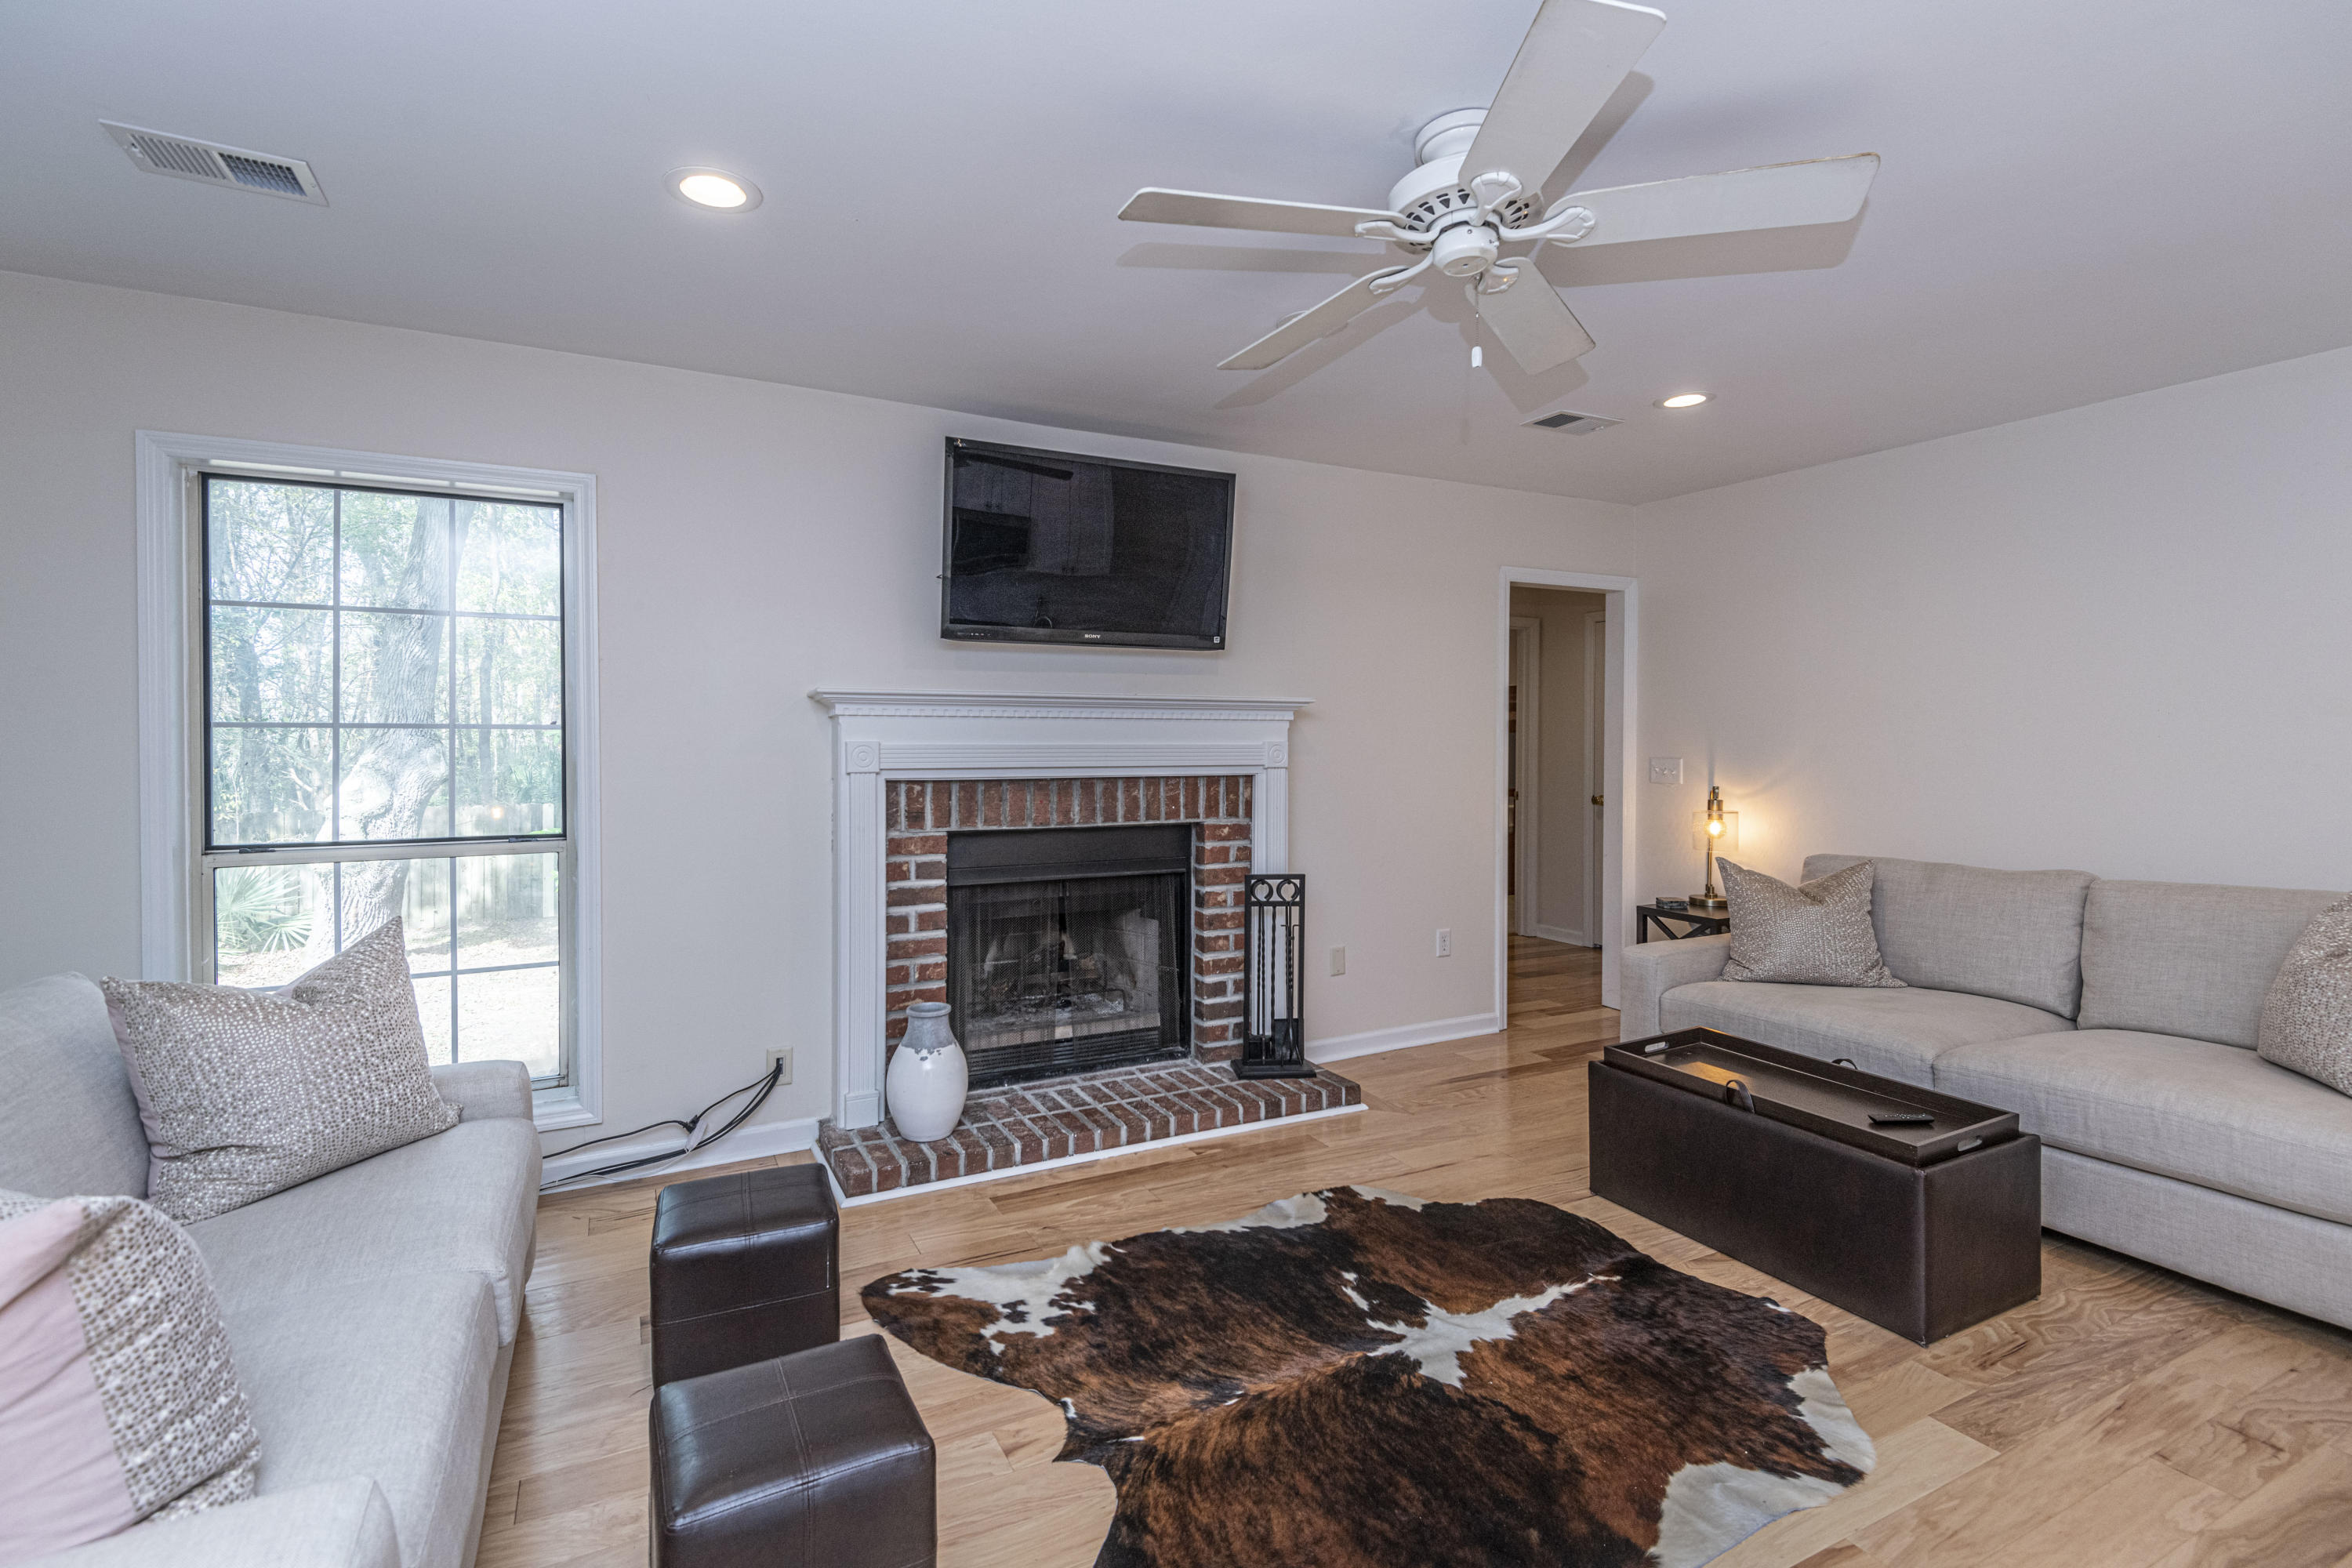 Coopers Pointe Homes For Sale - 1582 Hatteras Sound, Mount Pleasant, SC - 3